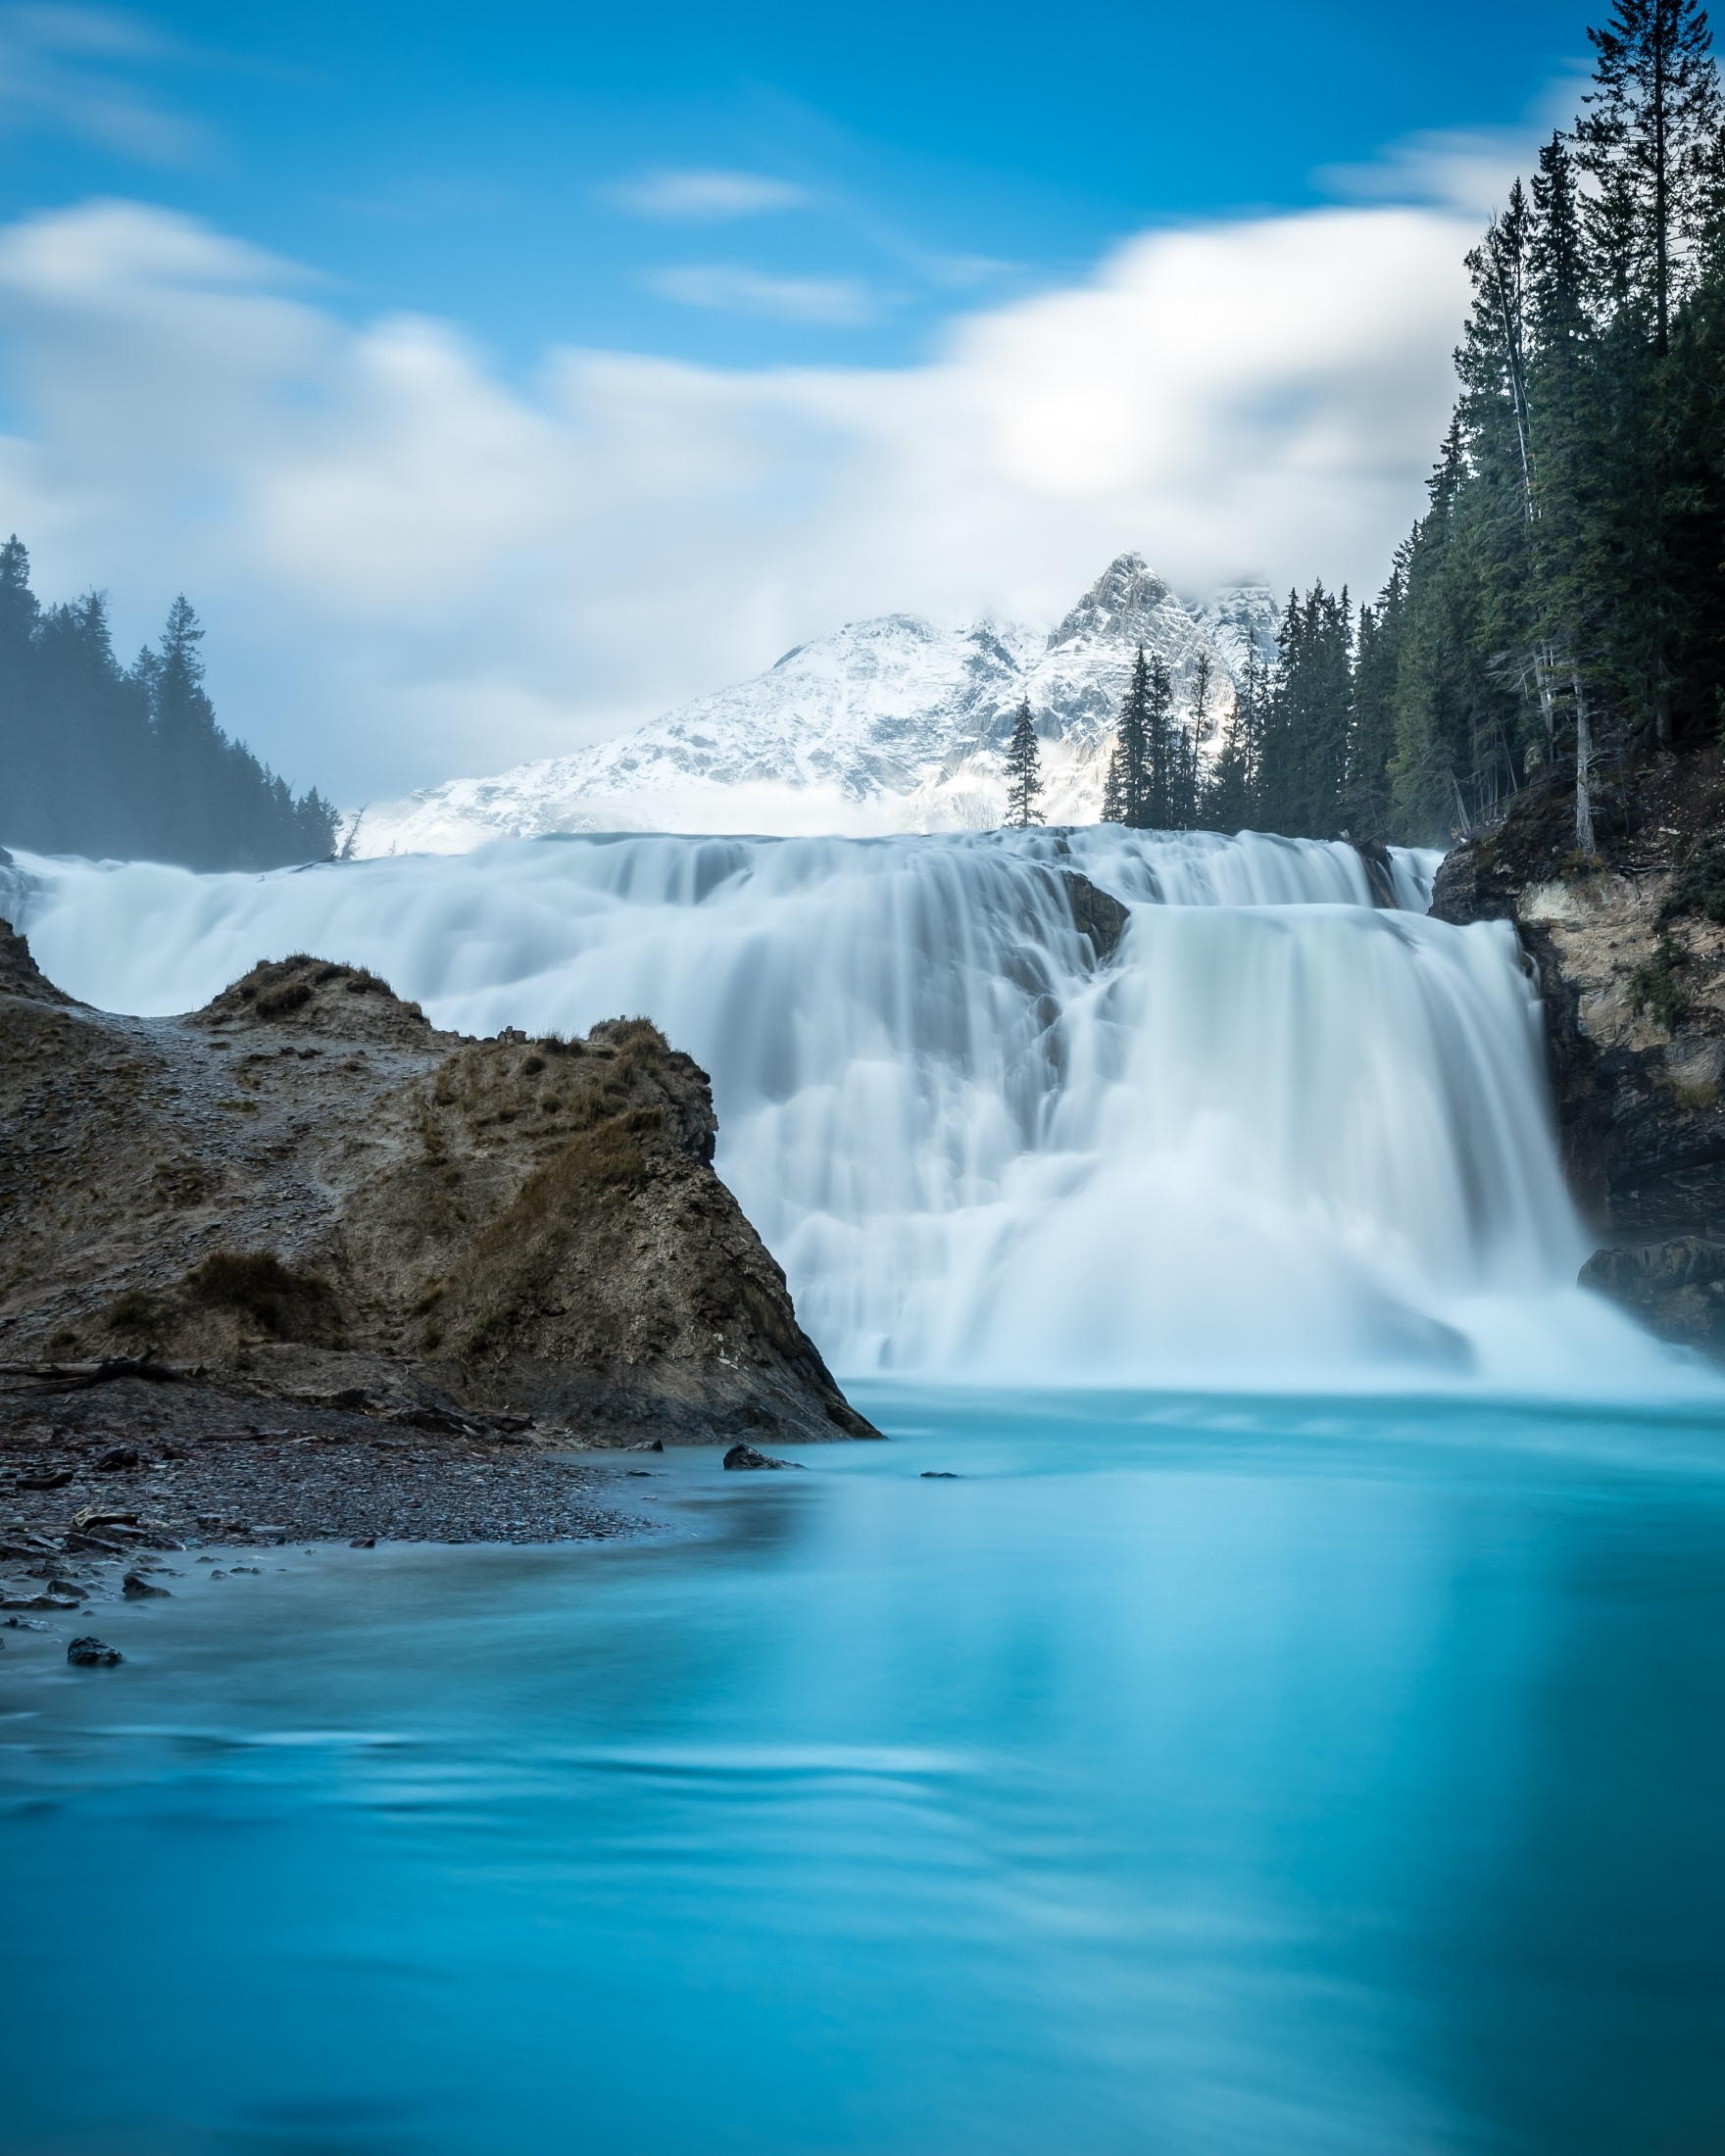 Wapta Falls in Yoho National Park, B.C.